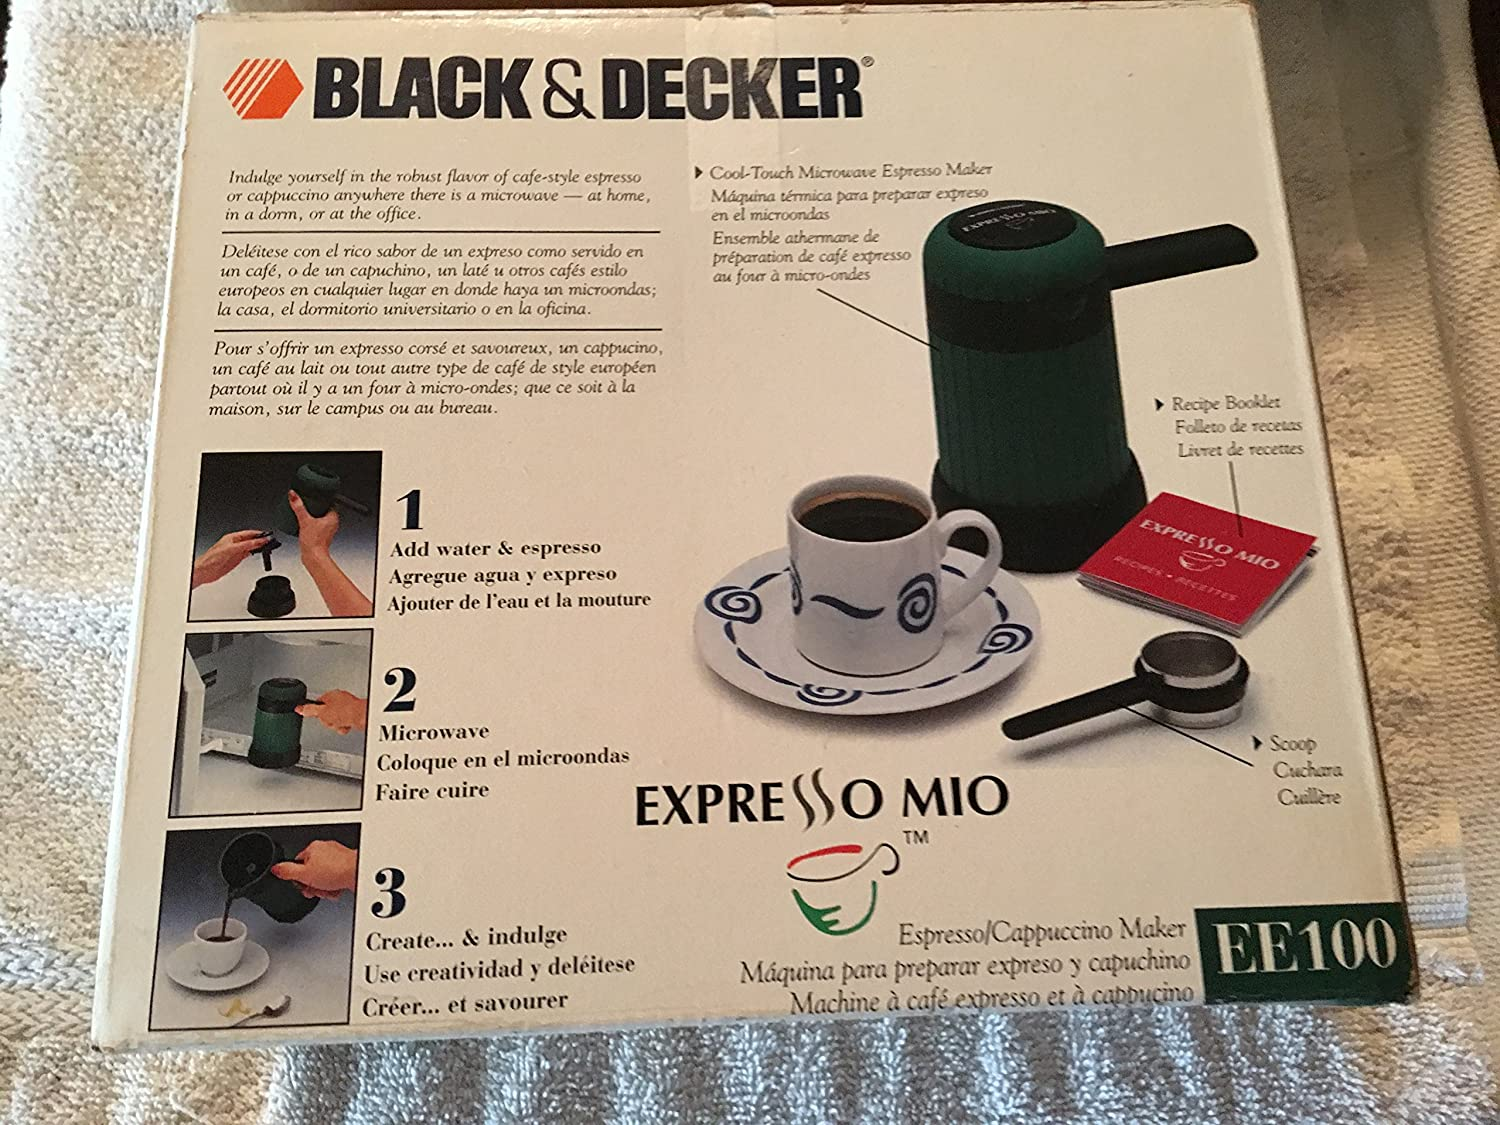 Amazon.com: Black & Decker Epresso Mio EE100 Espresso/Cappuccino Maker, new in box, box has been opened.: Kitchen & Dining